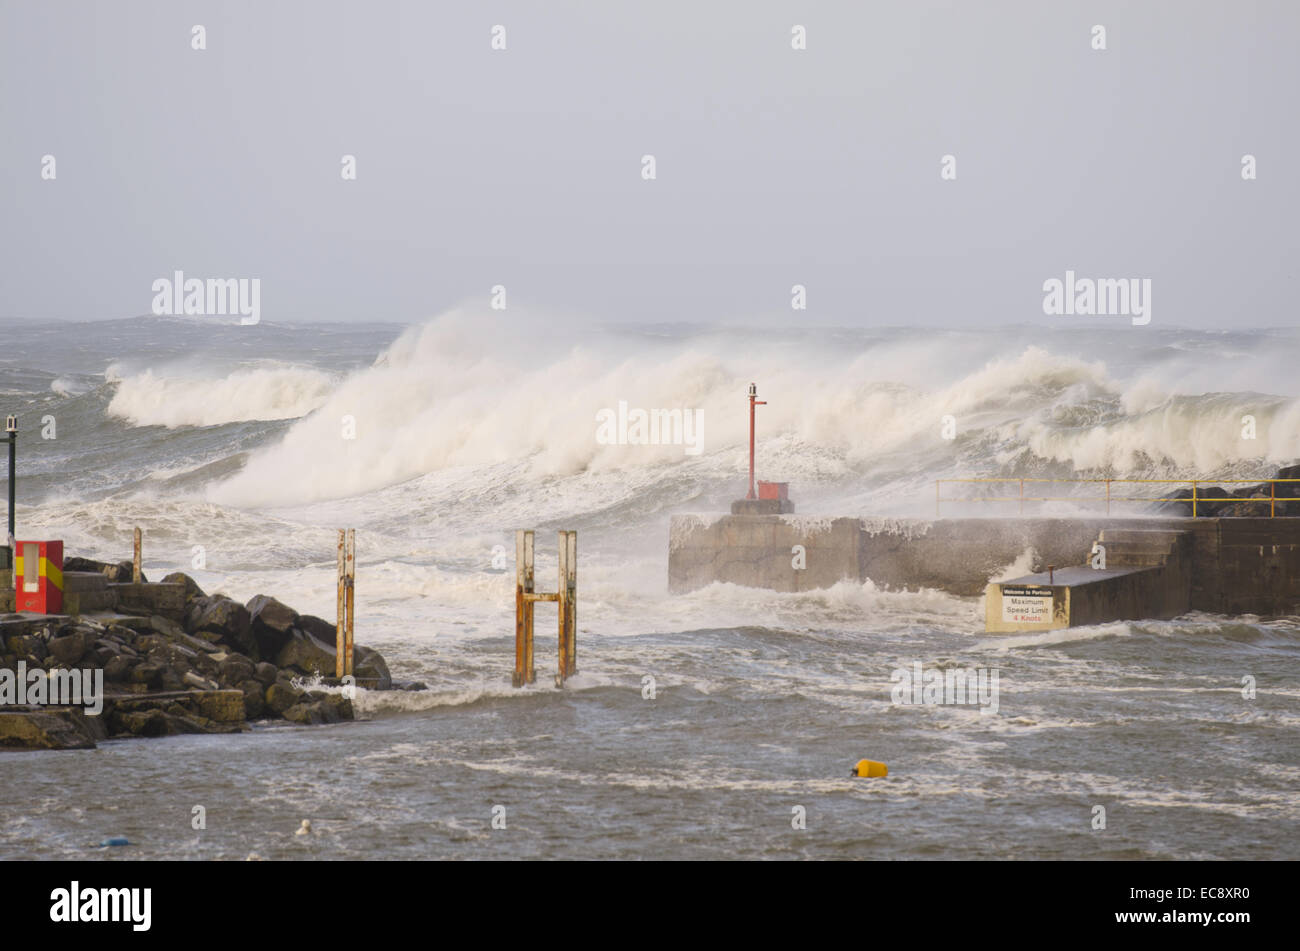 Portrush, Northern Ireland, UK. 10th Dec, 2014. Massive waves pound the Harbour Portrush Northern Ireland. The intense - Stock Image